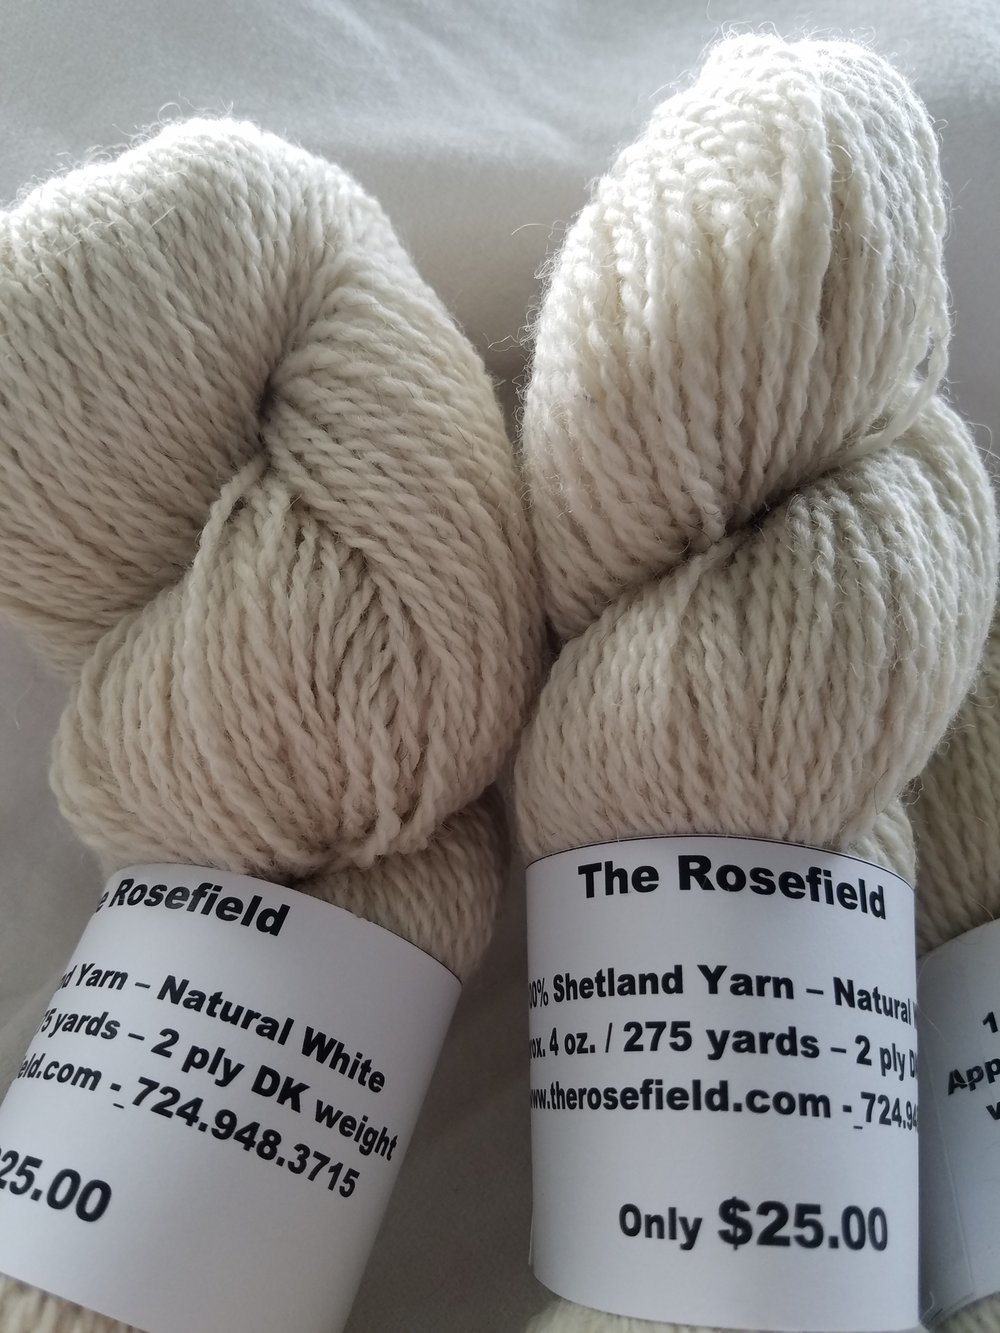 11. White Shetland 2 ply DK weight